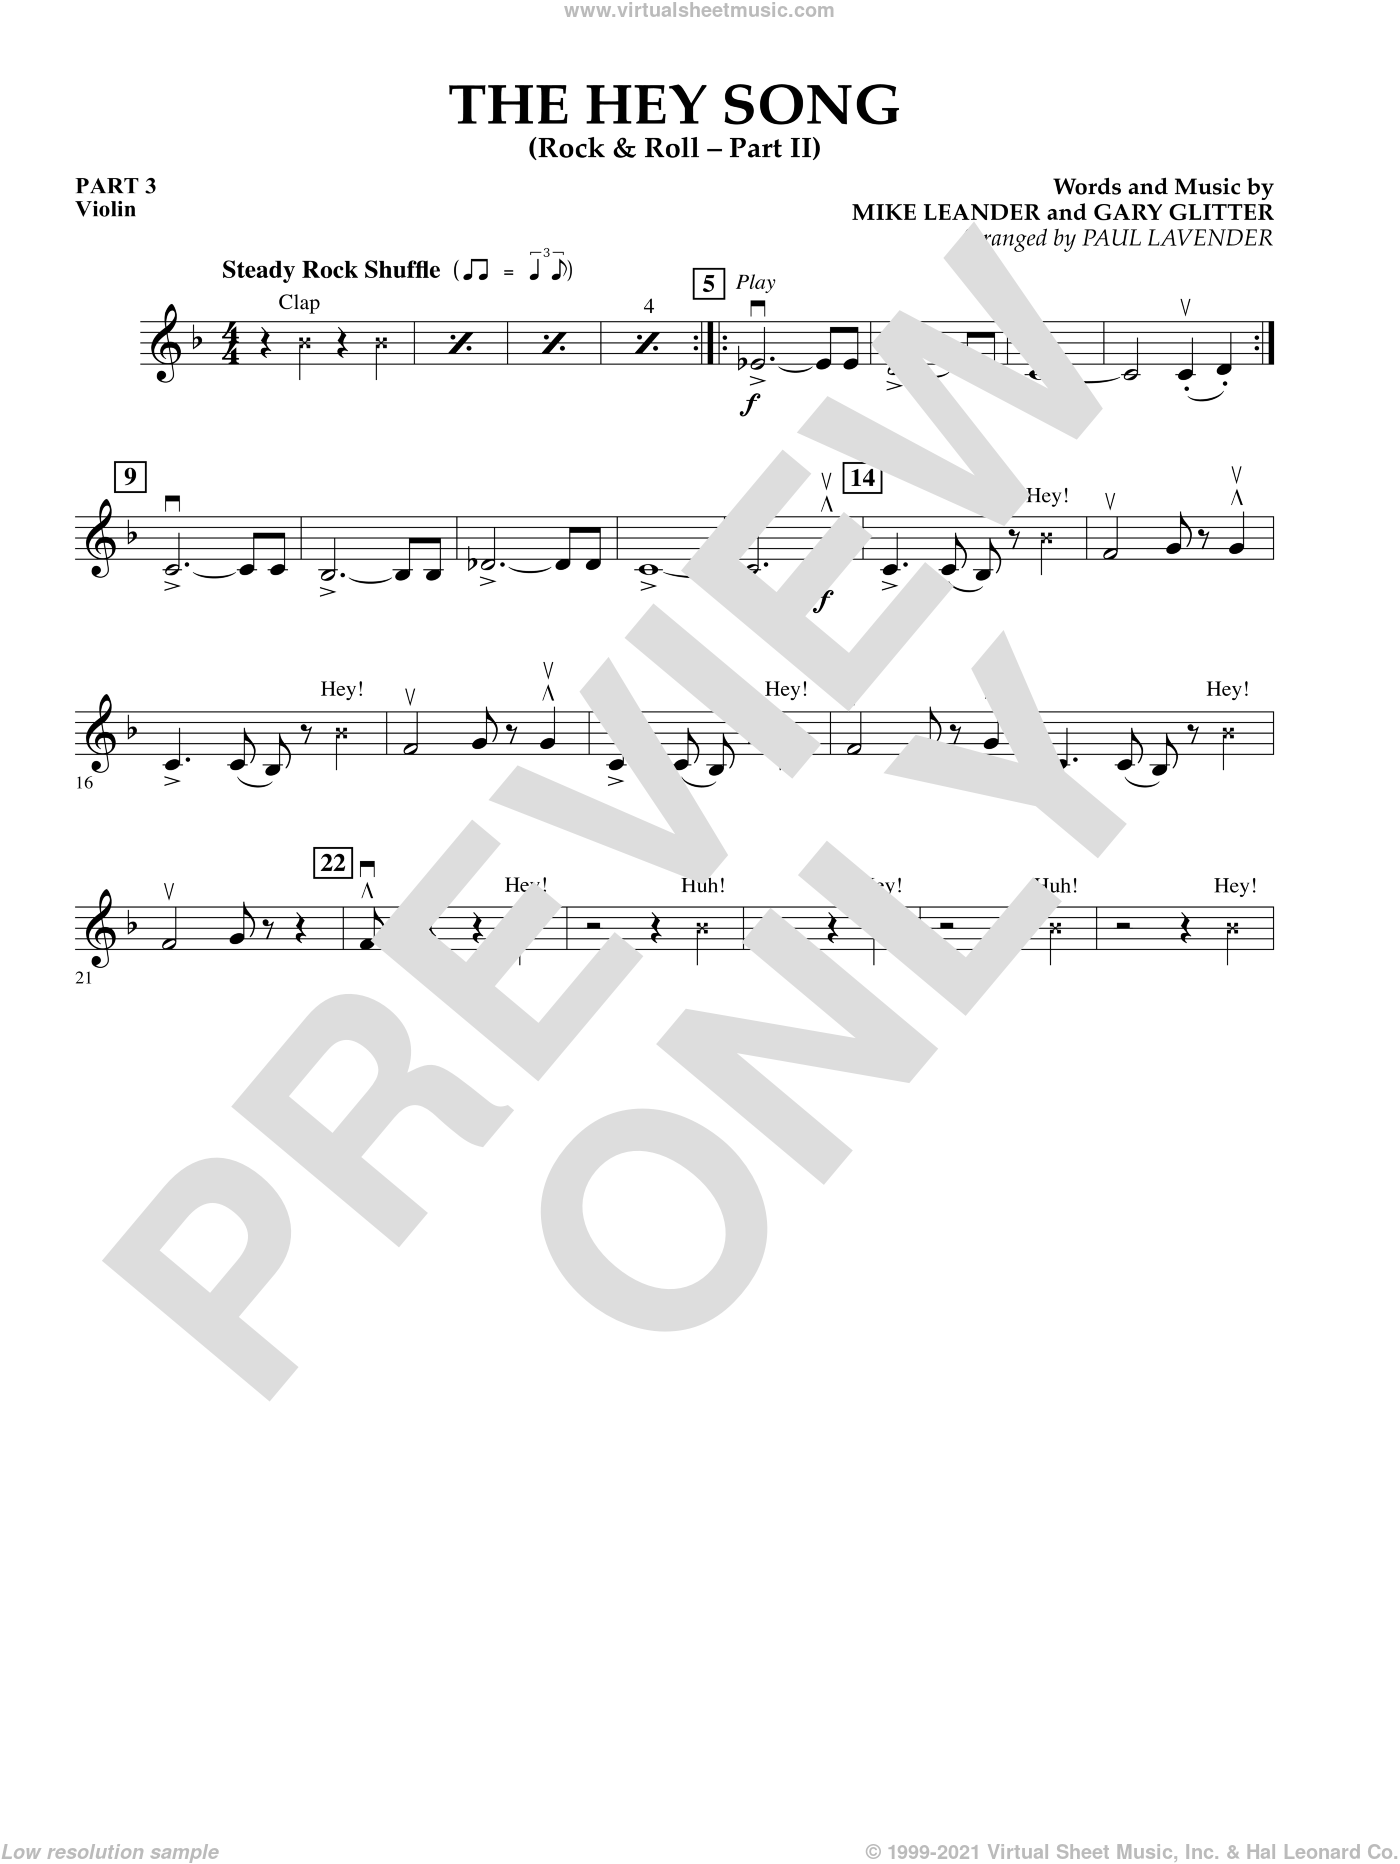 The Hey Song (Rock and Roll Part II) (Flex-Band) sheet music for concert band (pt.3 - violin) by Gary Glitter, Paul Lavender and Mike Leander, intermediate skill level